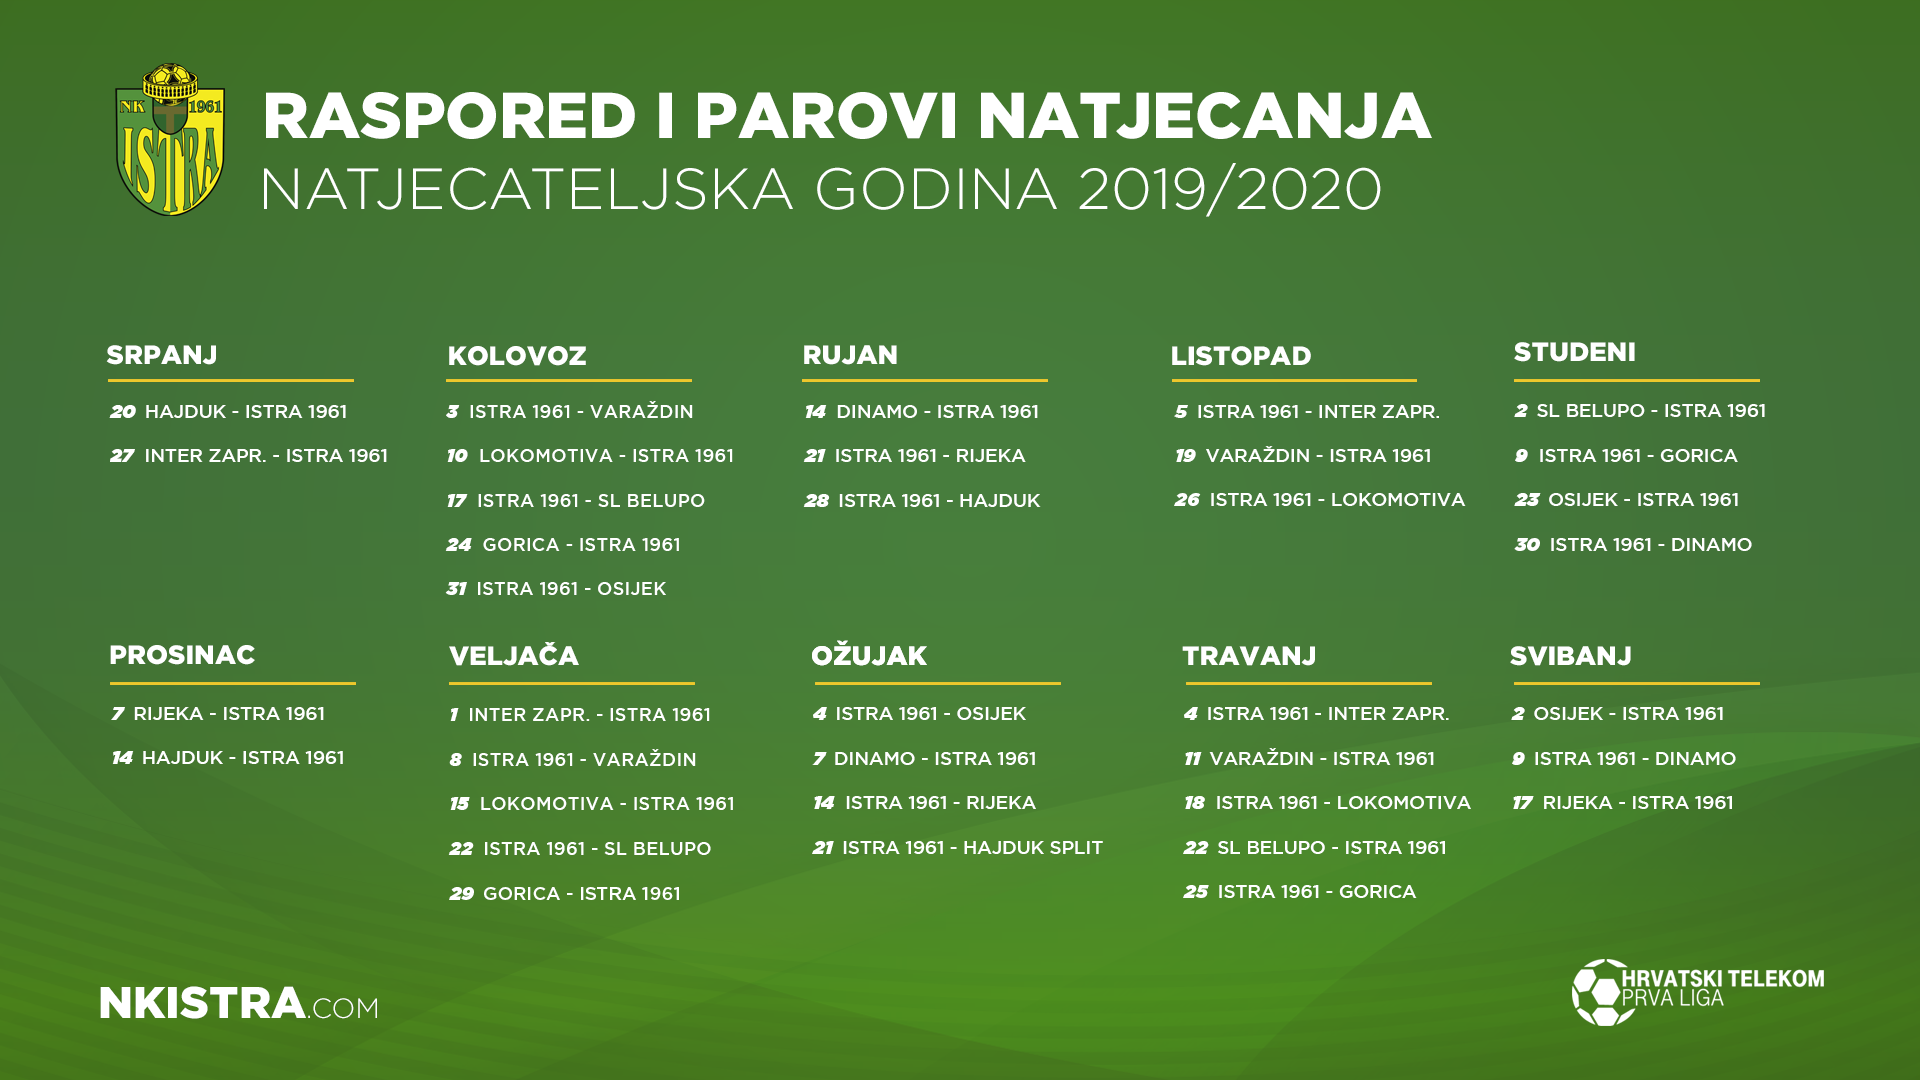 Interit Calendario.Schedule For 2019 2020 Nk Istra